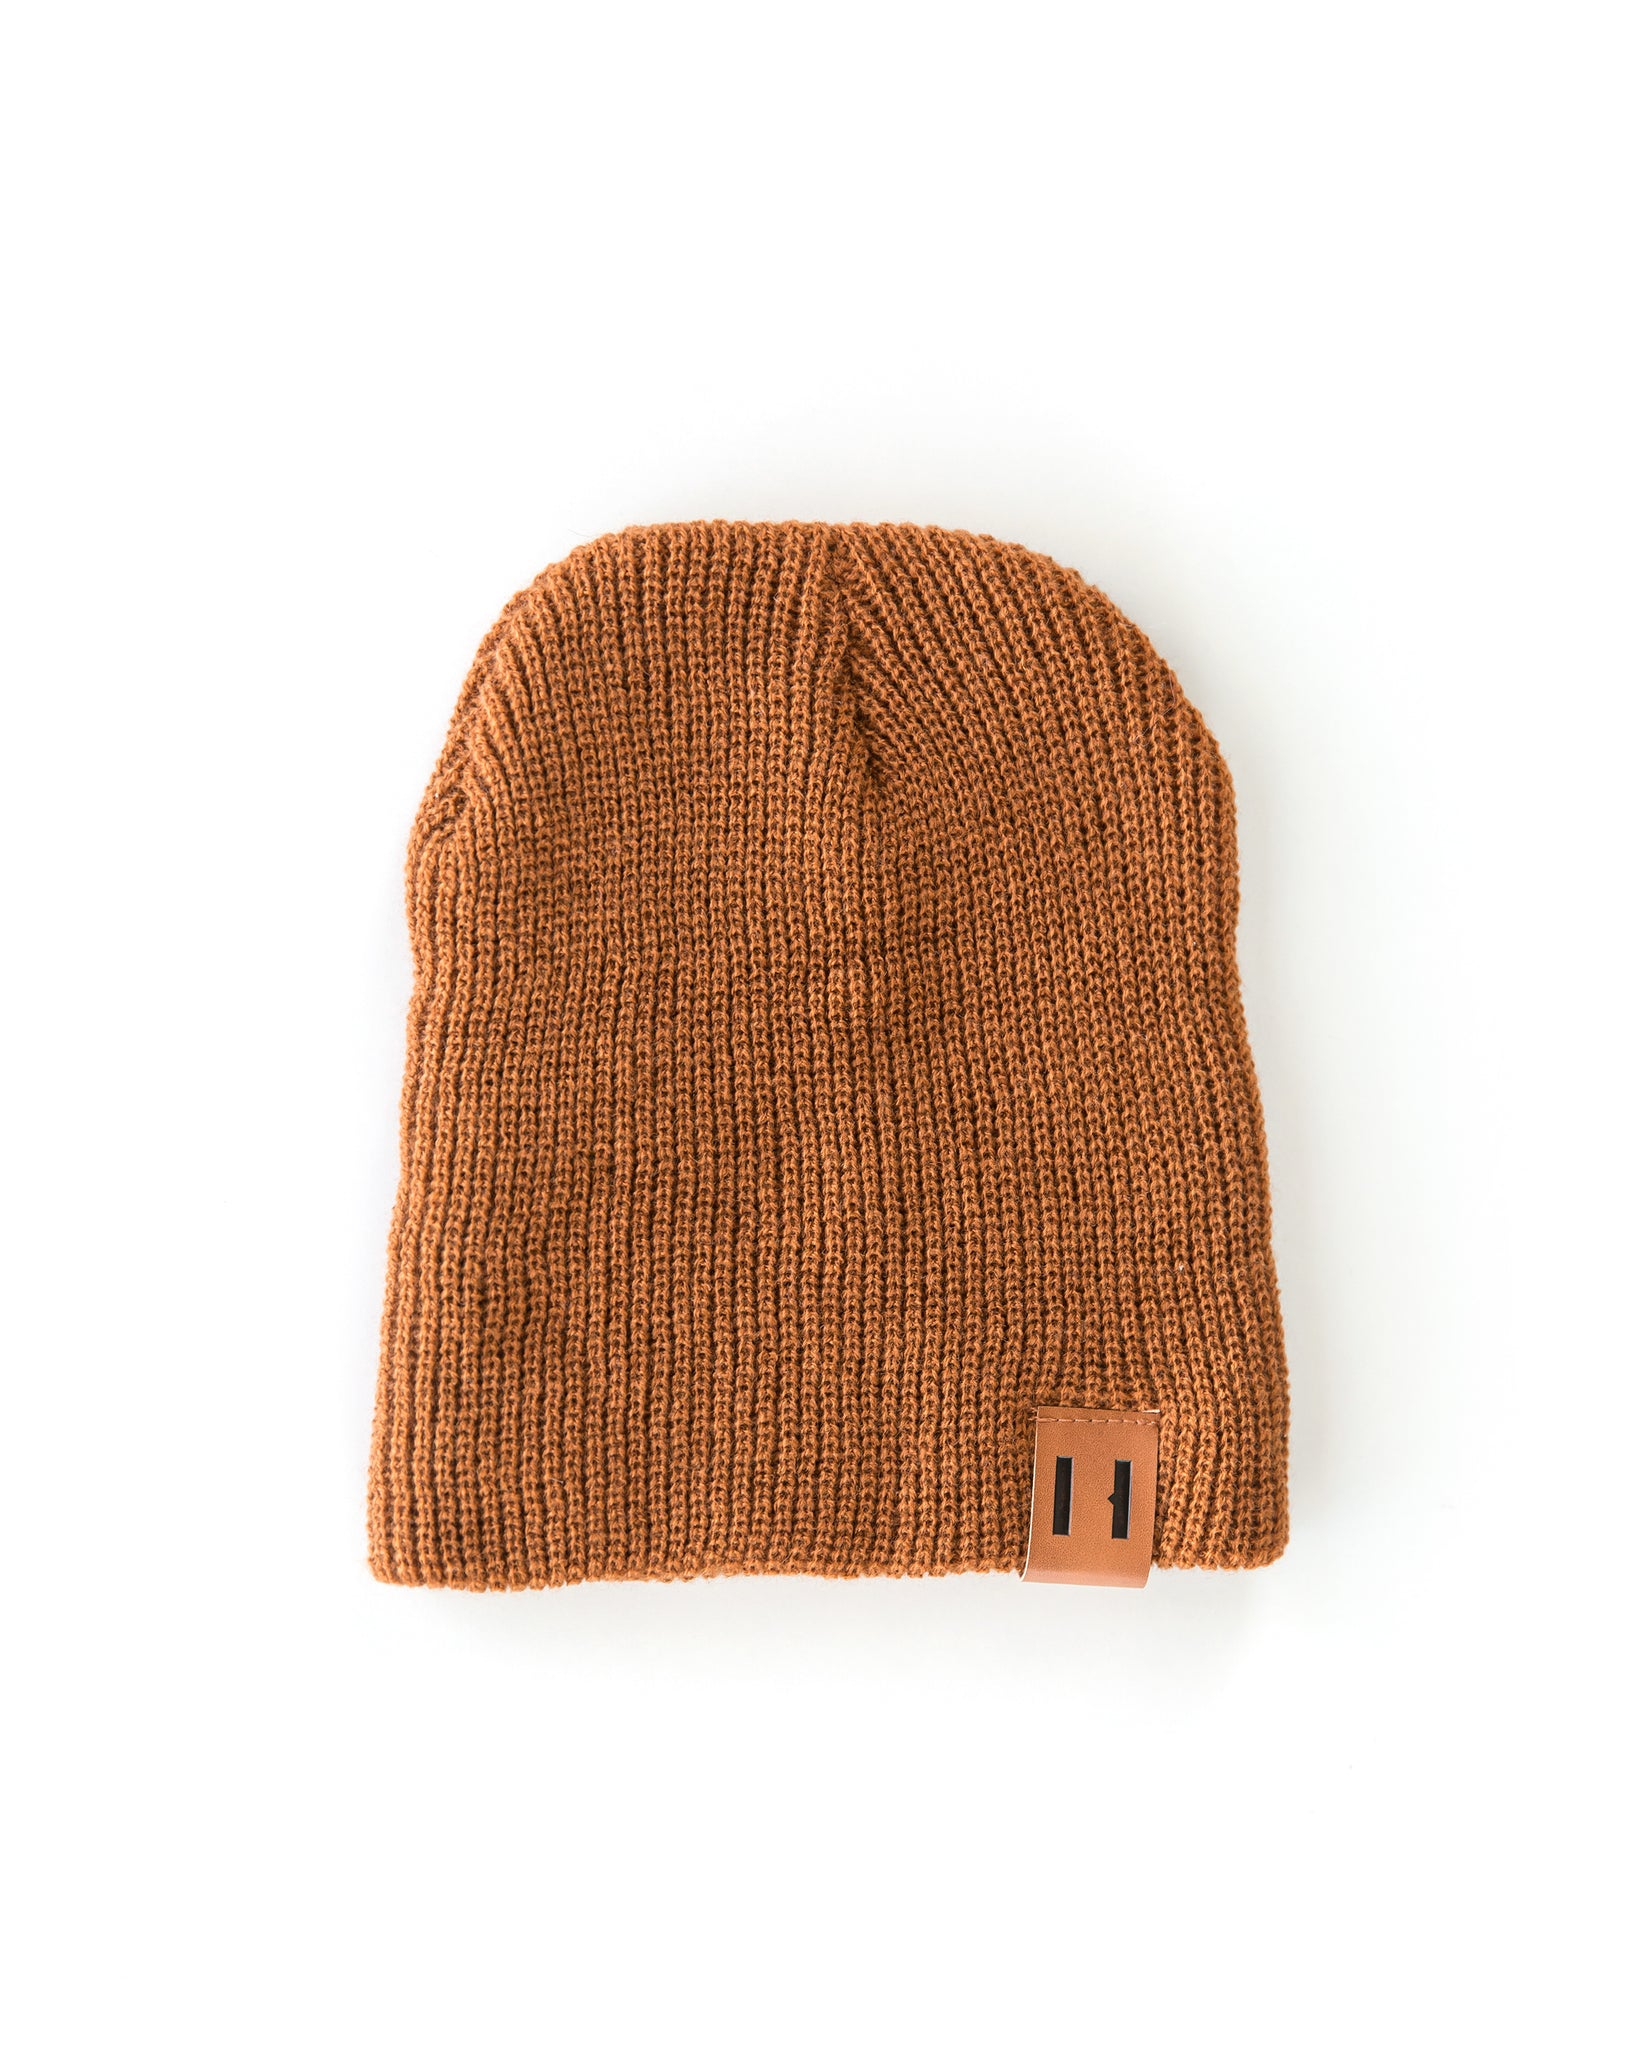 Daddy & Me Dude Beanie in Cognac - Reverie Threads